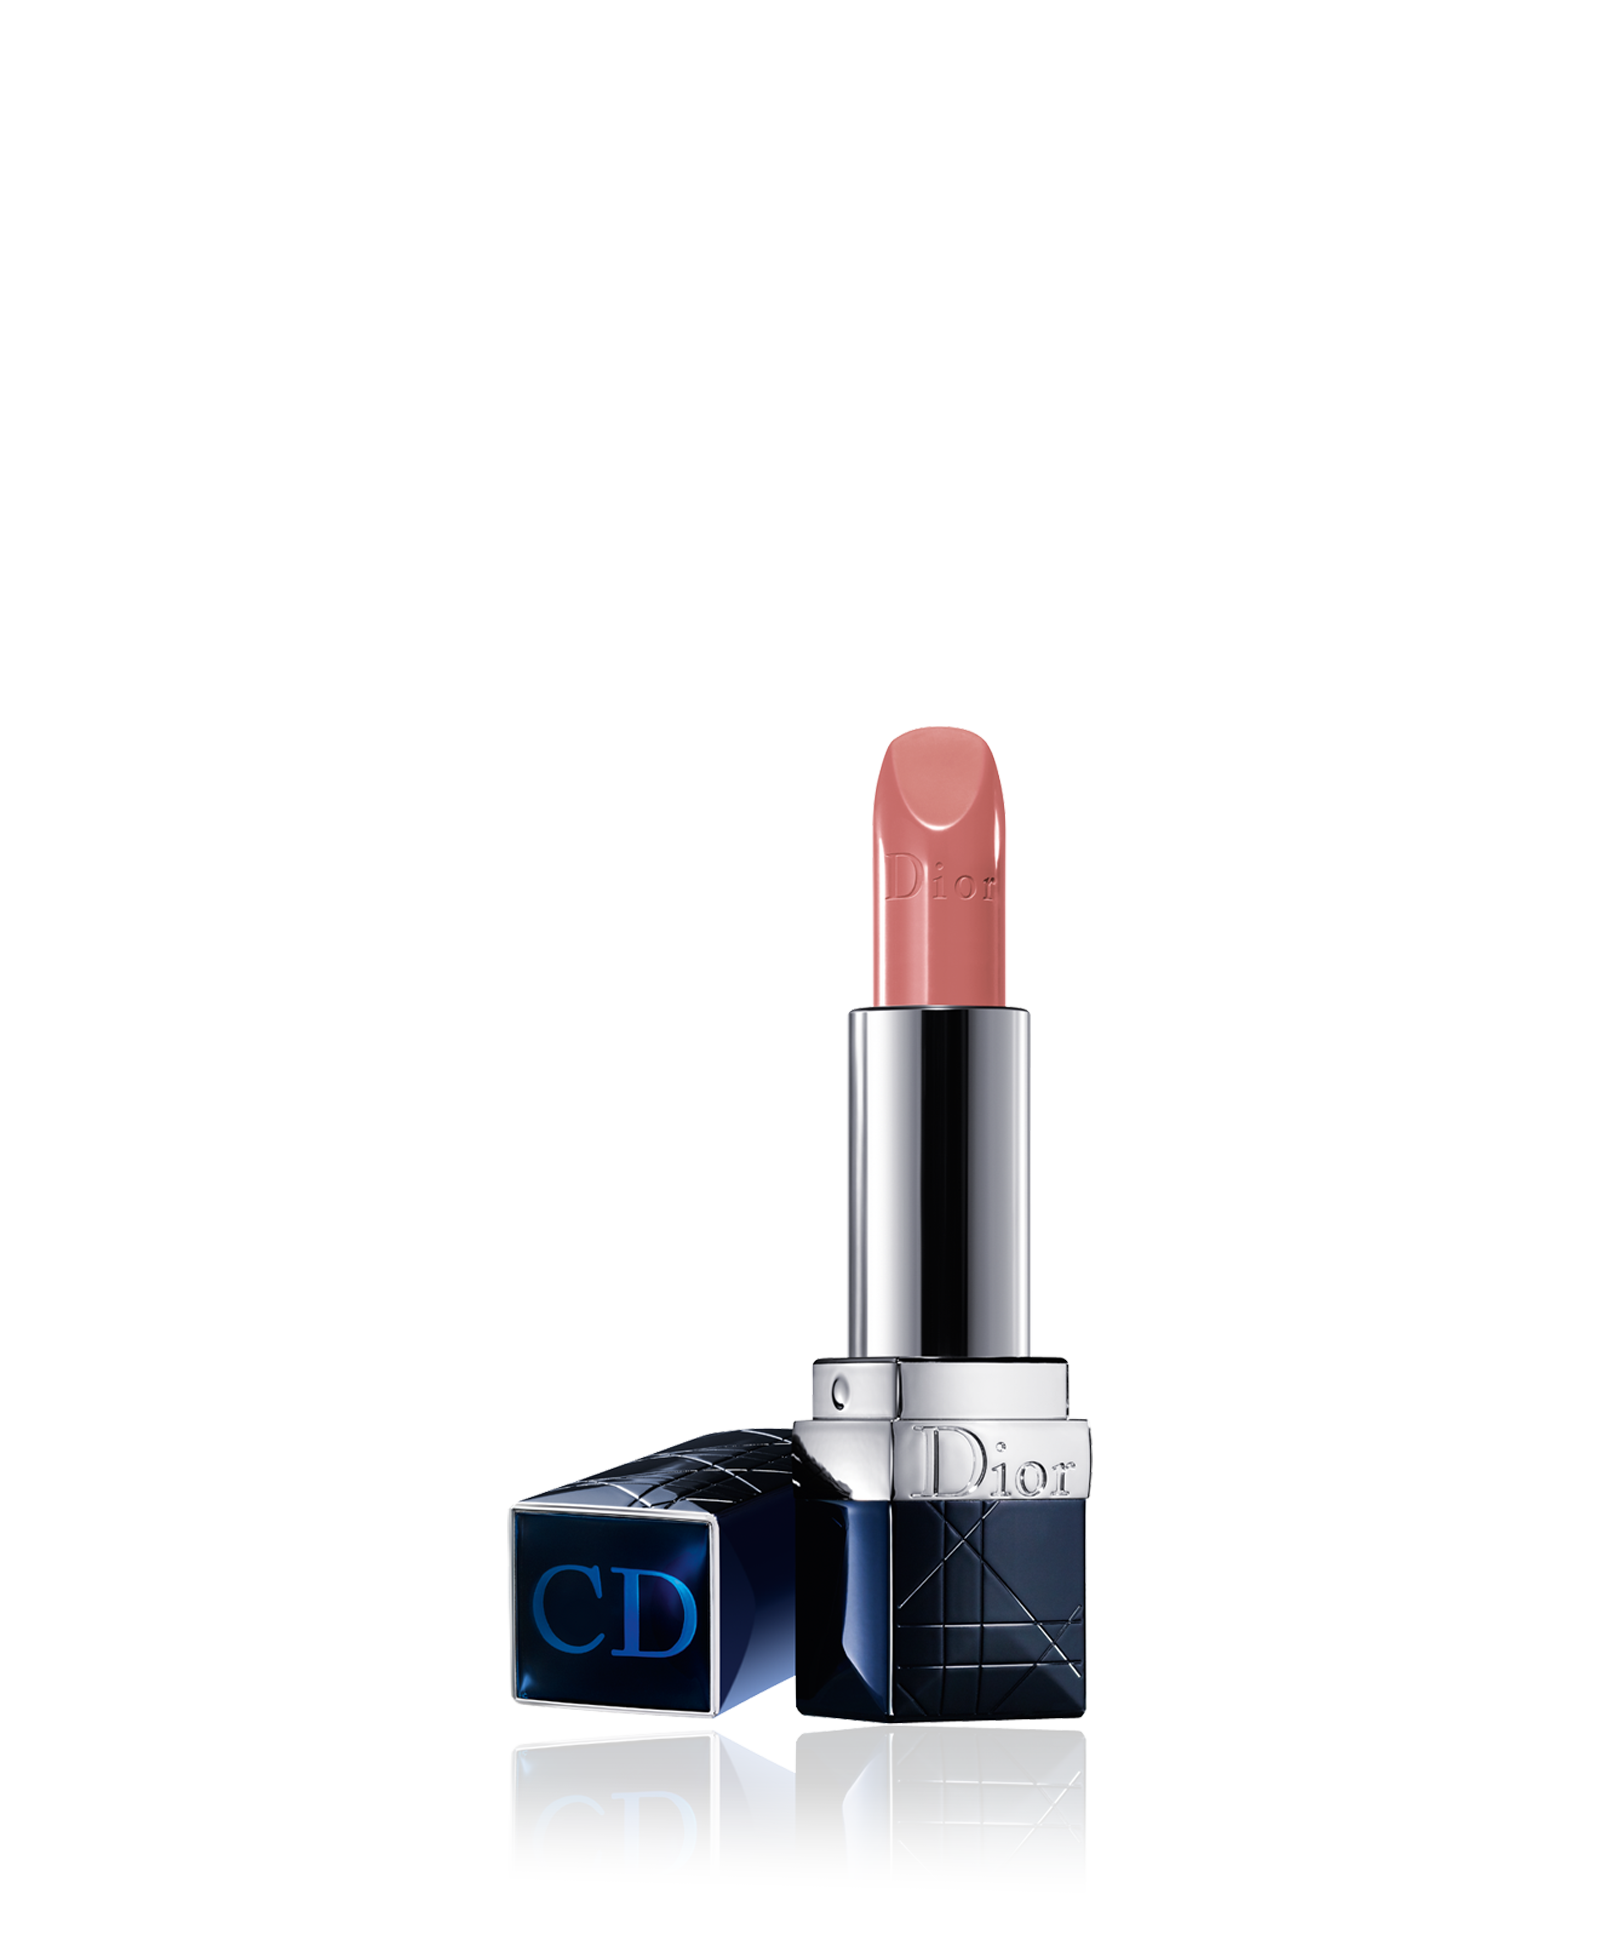 Rouge Dior 13743430504.png